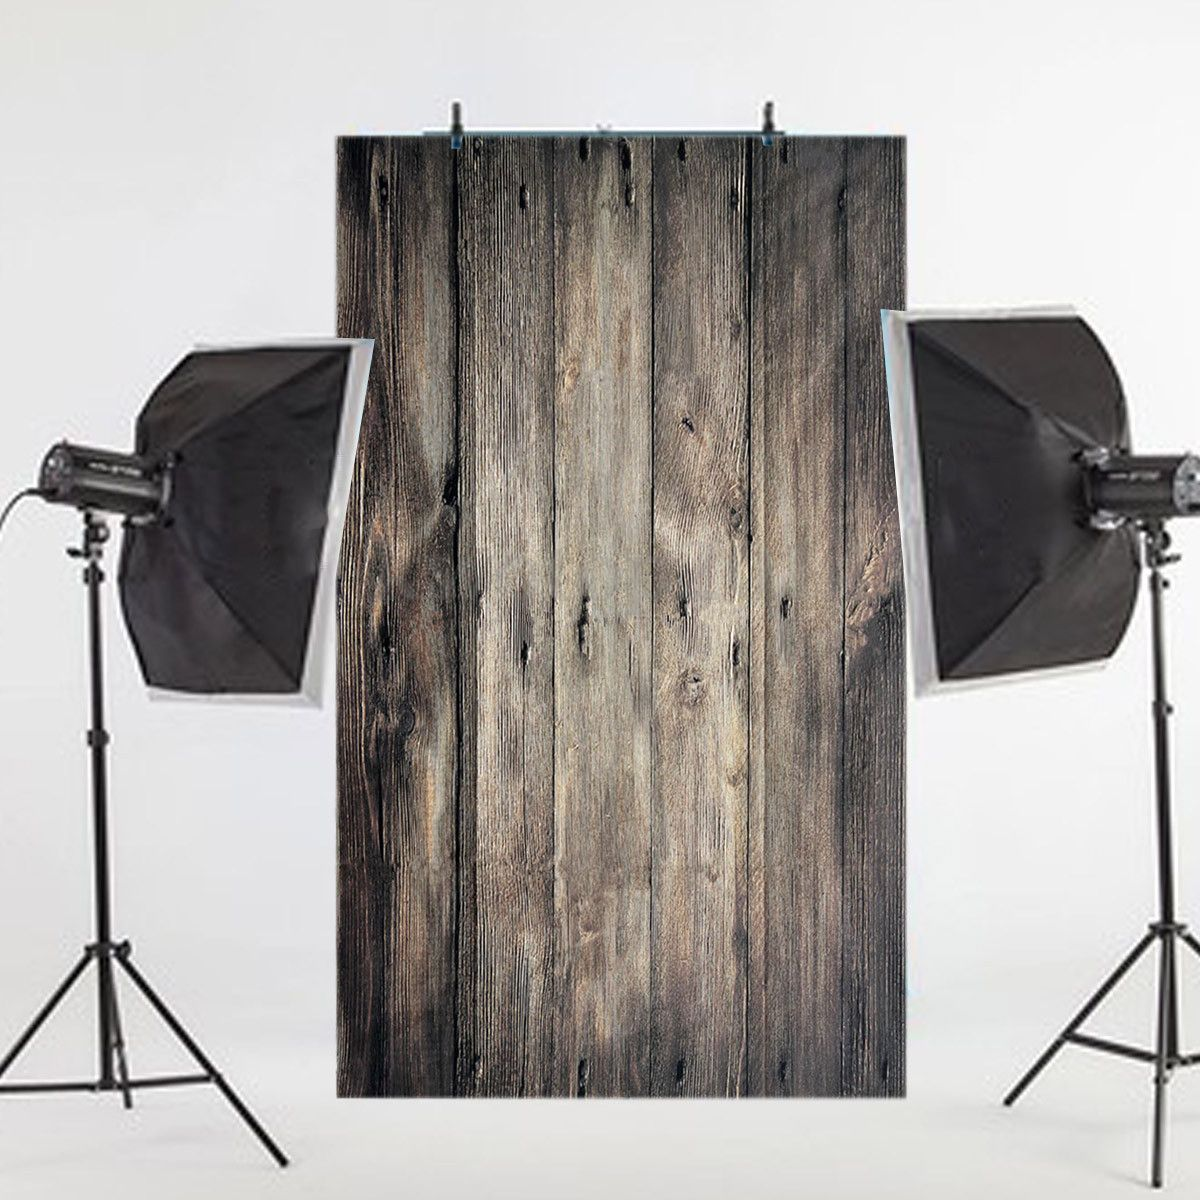 New 3x5FT Vintage Photography Backdrops Wood Vintage Photography Backdrop Backgrounds Studio Wood Background Fotografia mi light 2 4g 1pcs lot 12w led downlight remote rf control wireless bulb lamp white warm white down light 85 265v